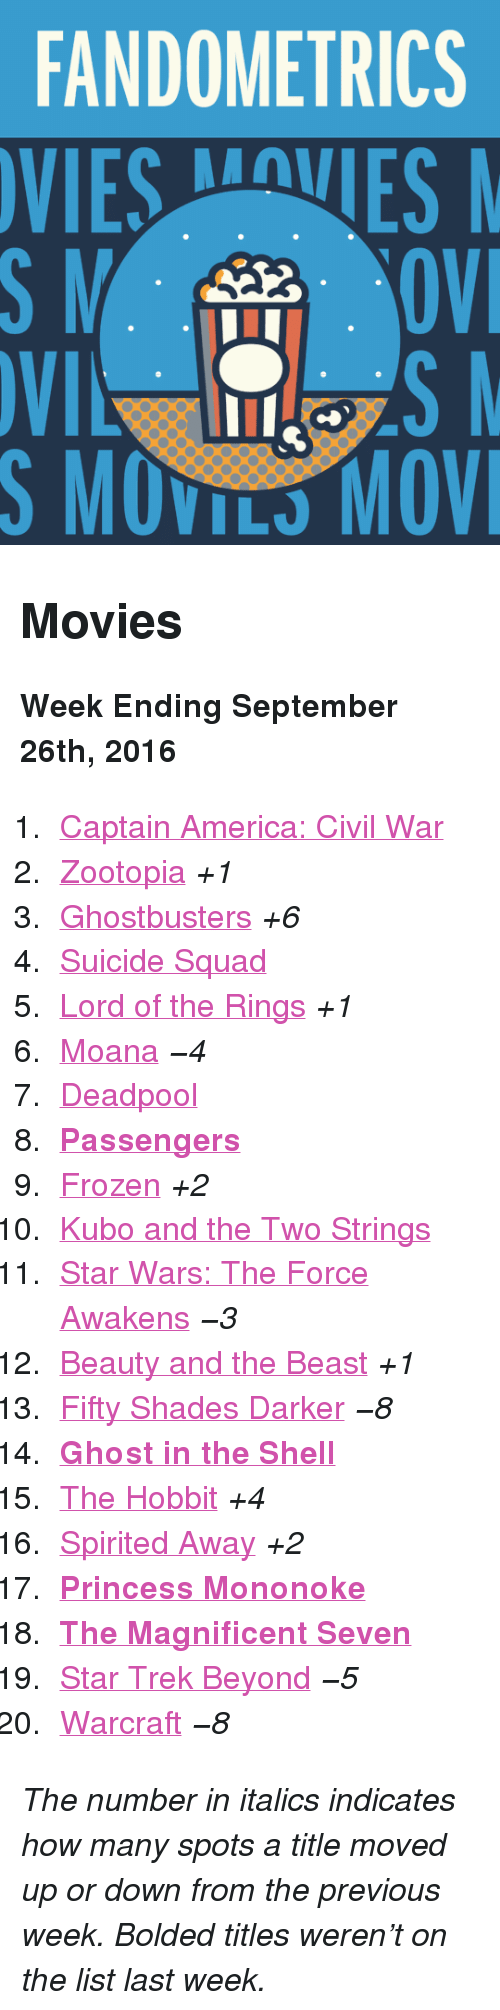 "moana: FANDOMETRICS  VIESVES  S MOVILS MOV <h2>Movies</h2><p><b>Week Ending September 26th, 2016</b></p><ol><li><a href=""http://www.tumblr.com/search/captain%20america%20civil%20war"">Captain America: Civil War</a></li>  <li><a href=""http://www.tumblr.com/search/zootopia"">Zootopia</a> <i>+1</i></li>  <li><a href=""http://www.tumblr.com/search/ghostbusters"">Ghostbusters</a> <i>+6</i></li>  <li><a href=""http://www.tumblr.com/search/suicide%20squad"">Suicide Squad</a></li>  <li><a href=""http://www.tumblr.com/search/lotr"">Lord of the Rings</a> <i>+1</i></li>  <li><a href=""http://www.tumblr.com/search/moana"">Moana</a> <i>−4</i></li>  <li><a href=""http://www.tumblr.com/search/deadpool"">Deadpool</a></li>  <li><a href=""http://www.tumblr.com/search/passengers""><b>Passengers</b></a></li>  <li><a href=""http://www.tumblr.com/search/frozen"">Frozen</a> <i>+2</i></li>  <li><a href=""http://www.tumblr.com/search/kubo%20and%20the%20two%20strings"">Kubo and the Two Strings</a></li>  <li><a href=""http://www.tumblr.com/search/the%20force%20awakens"">Star Wars: The Force Awakens</a> <i>−3</i></li>  <li><a href=""http://www.tumblr.com/search/beauty%20and%20the%20beast"">Beauty and the Beast</a> <i>+1</i></li>  <li><a href=""http://www.tumblr.com/search/fifty%20shades%20darker"">Fifty Shades Darker</a> <i>−8</i></li>  <li><a href=""http://www.tumblr.com/search/ghost%20in%20the%20shell""><b>Ghost in the Shell</b></a></li>  <li><a href=""http://www.tumblr.com/search/the%20hobbit"">The Hobbit</a> <i>+4</i></li>  <li><a href=""http://www.tumblr.com/search/spirited%20away"">Spirited Away</a> <i>+2</i></li>  <li><a href=""http://www.tumblr.com/search/princess%20mononoke""><b>Princess Mononoke</b></a></li>  <li><a href=""http://www.tumblr.com/search/the%20magnificent%20seven""><b>The Magnificent Seven</b></a></li>  <li><a href=""http://www.tumblr.com/search/star%20trek%20beyond"">Star Trek Beyond</a> <i>−5</i></li>  <li><a href=""http://www.tumblr.com/search/warcraft"">Warcraft</a> <i>−8</i></li></ol><p><i>The number in italics indicates how many spots a title moved up or down from the previous week. Bolded titles weren't on the list last week.</i></p>"